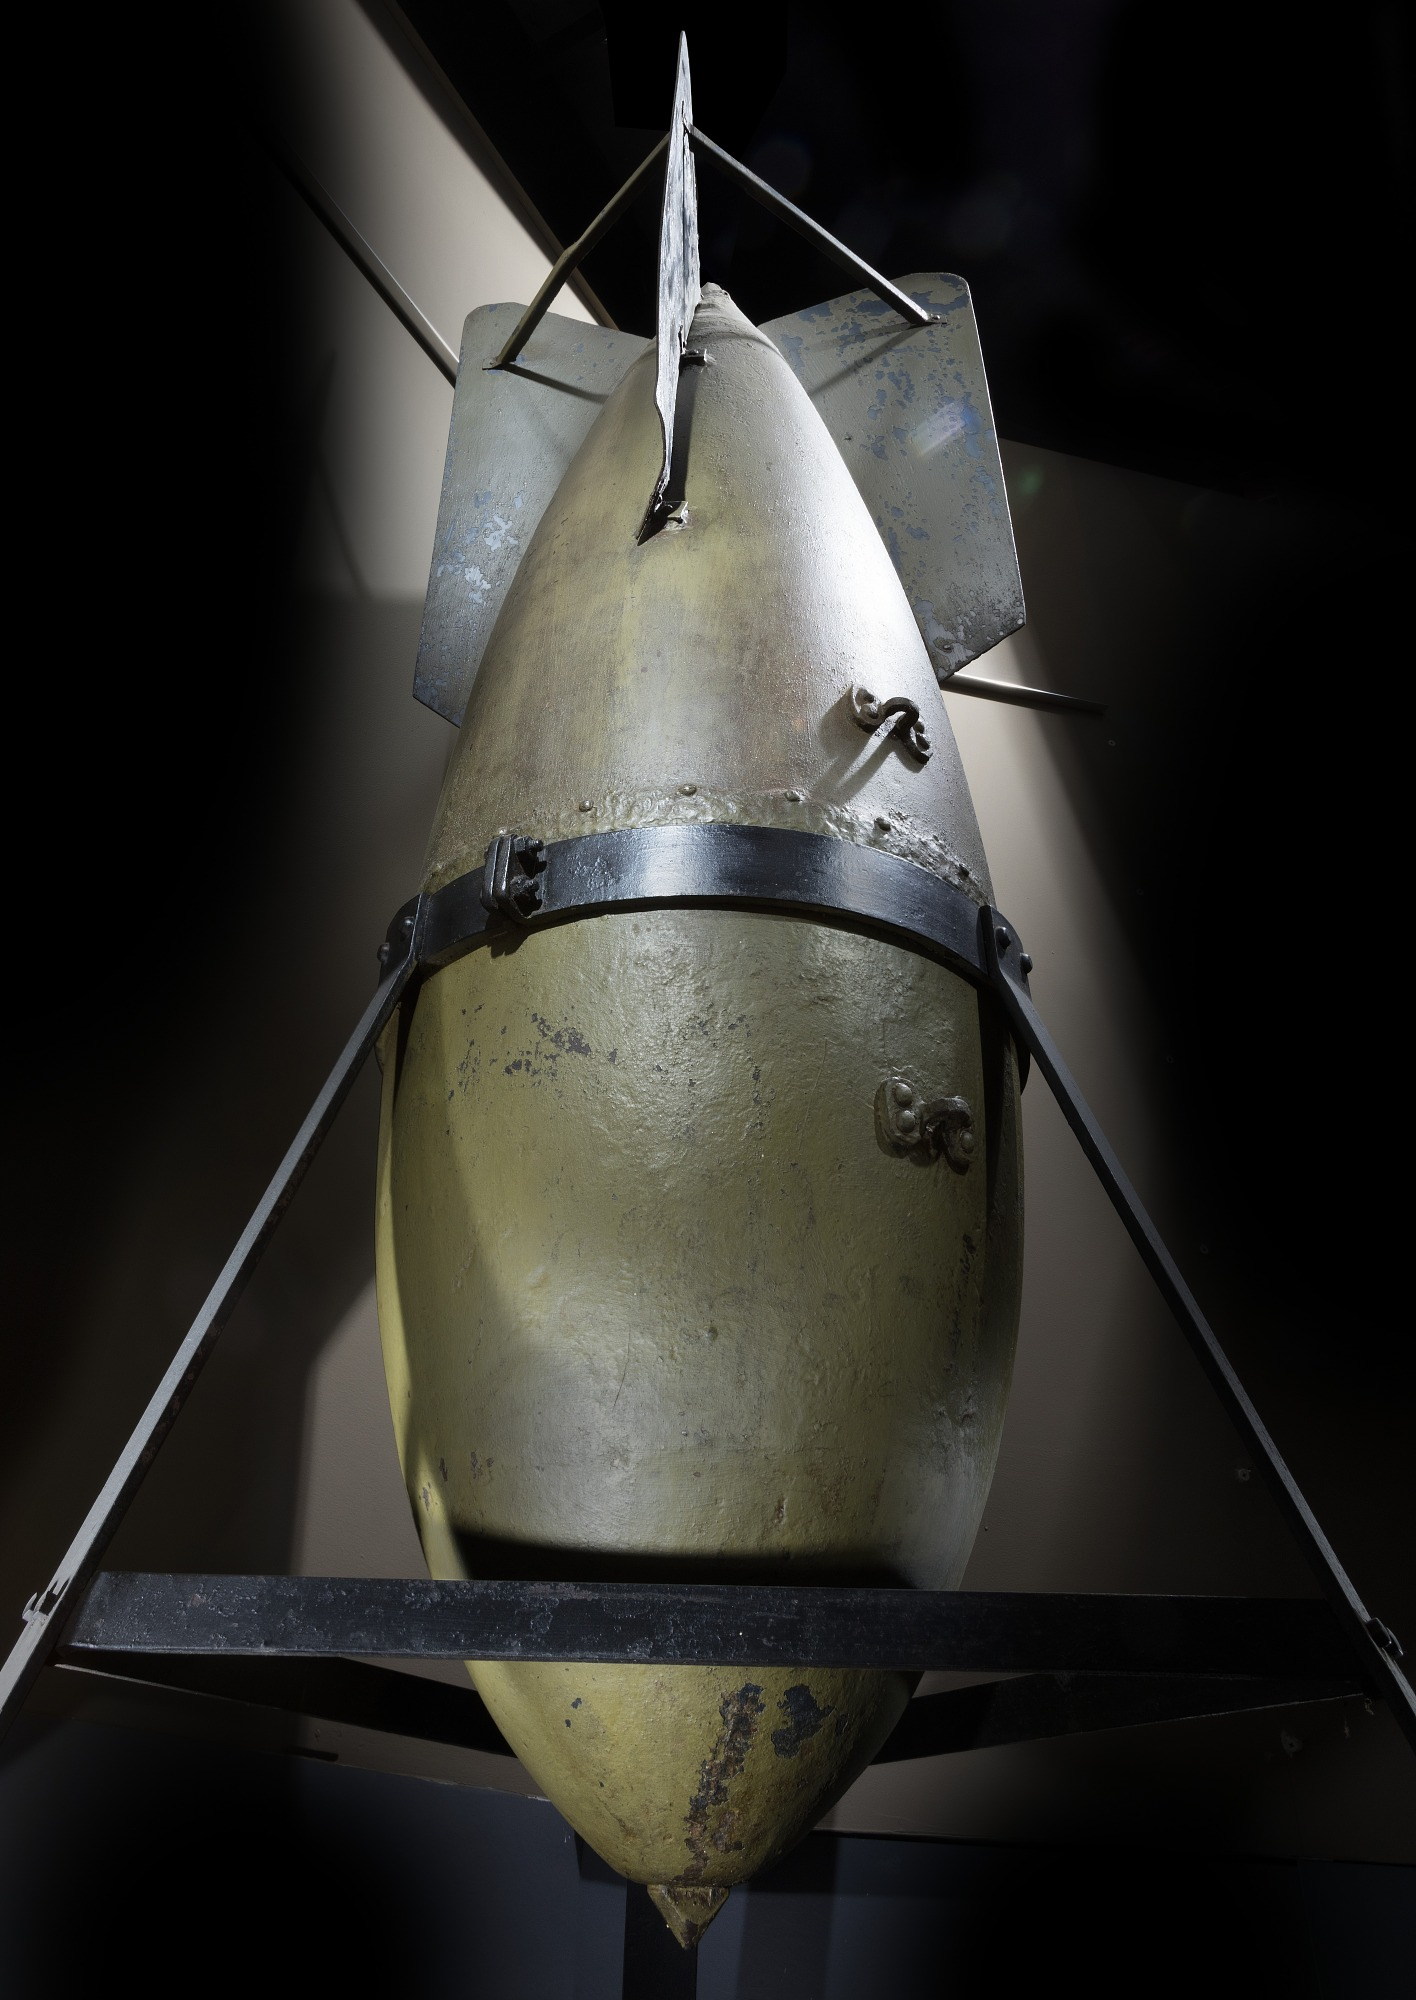 Image of : Bomb, High Explosive